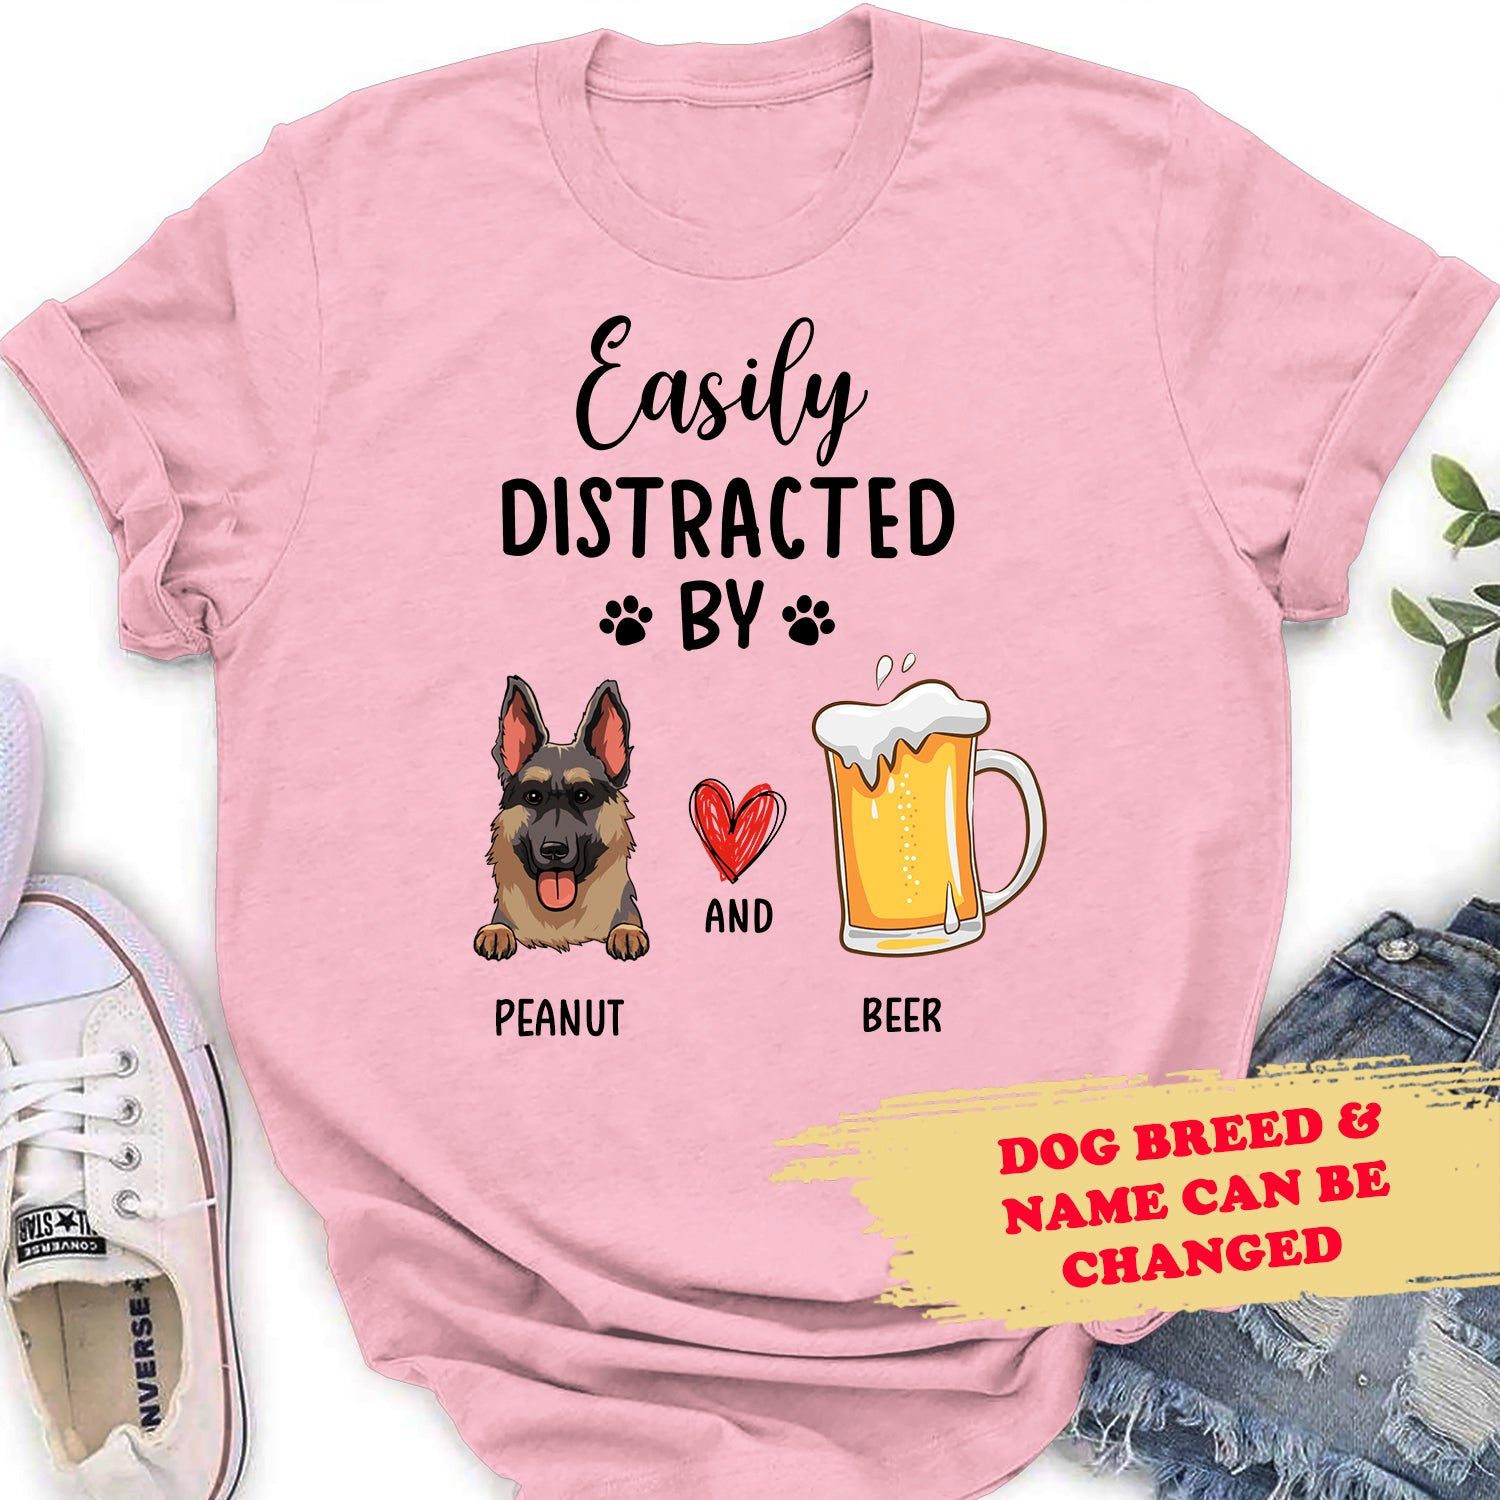 Easily Distracted By Dog & Beer - Personalized Custom Women T-shirt - 3048